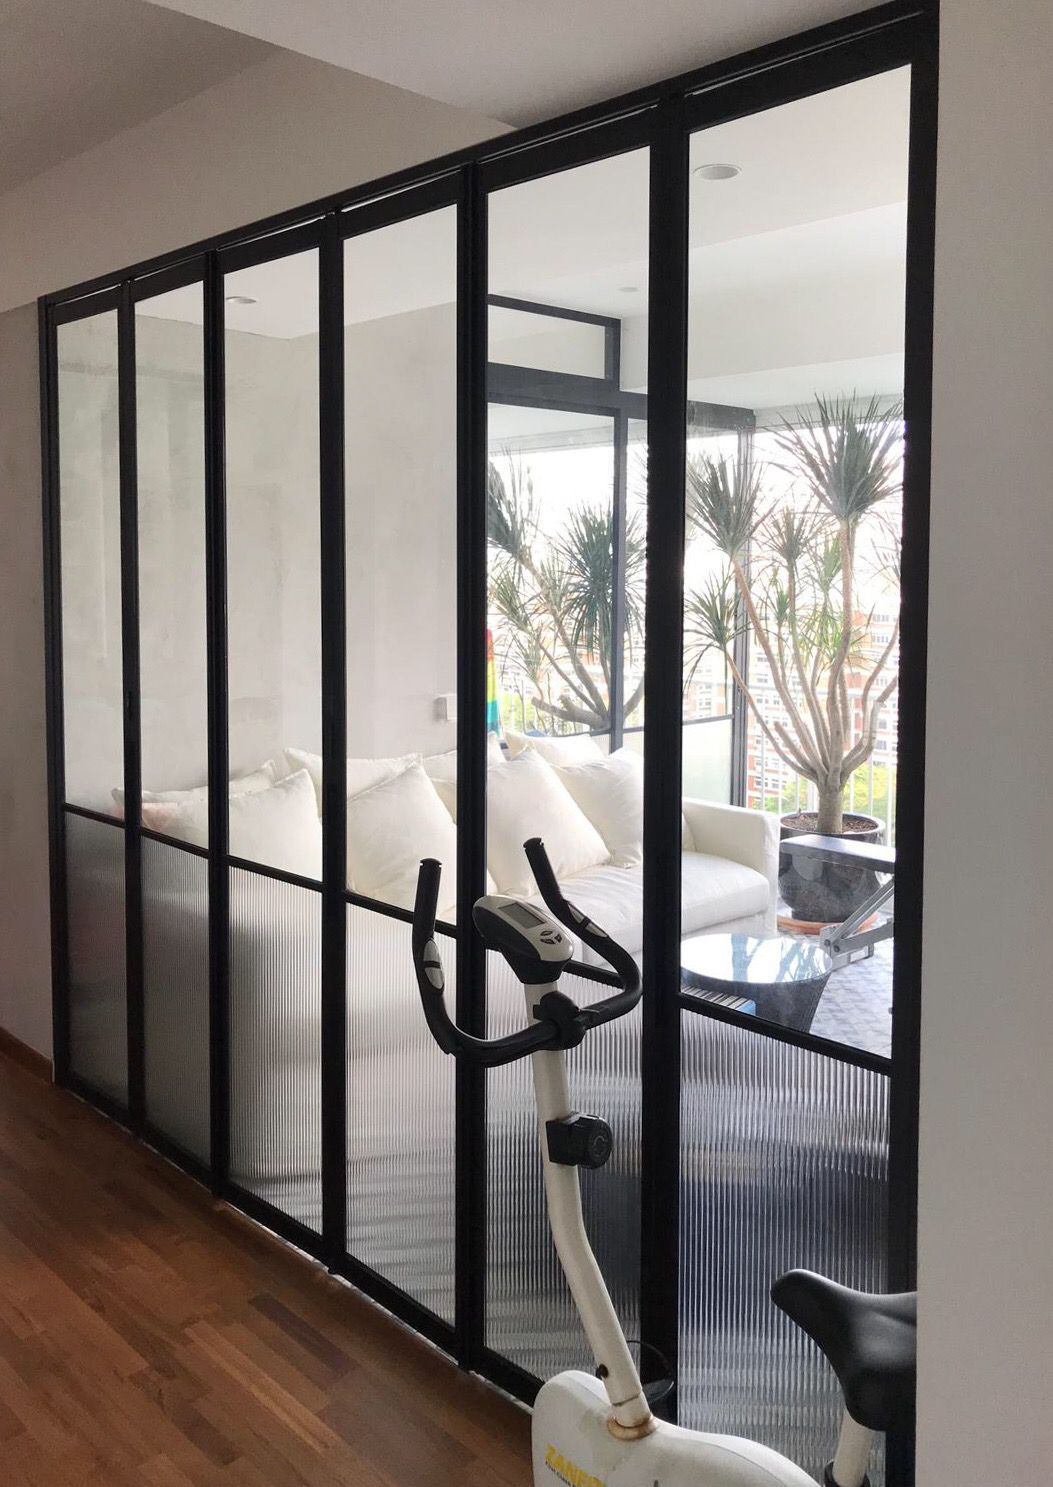 Asolidplan Creates A Flexible Living Space With Movable Walls Movable Walls Interior Design Singapore Living Spaces